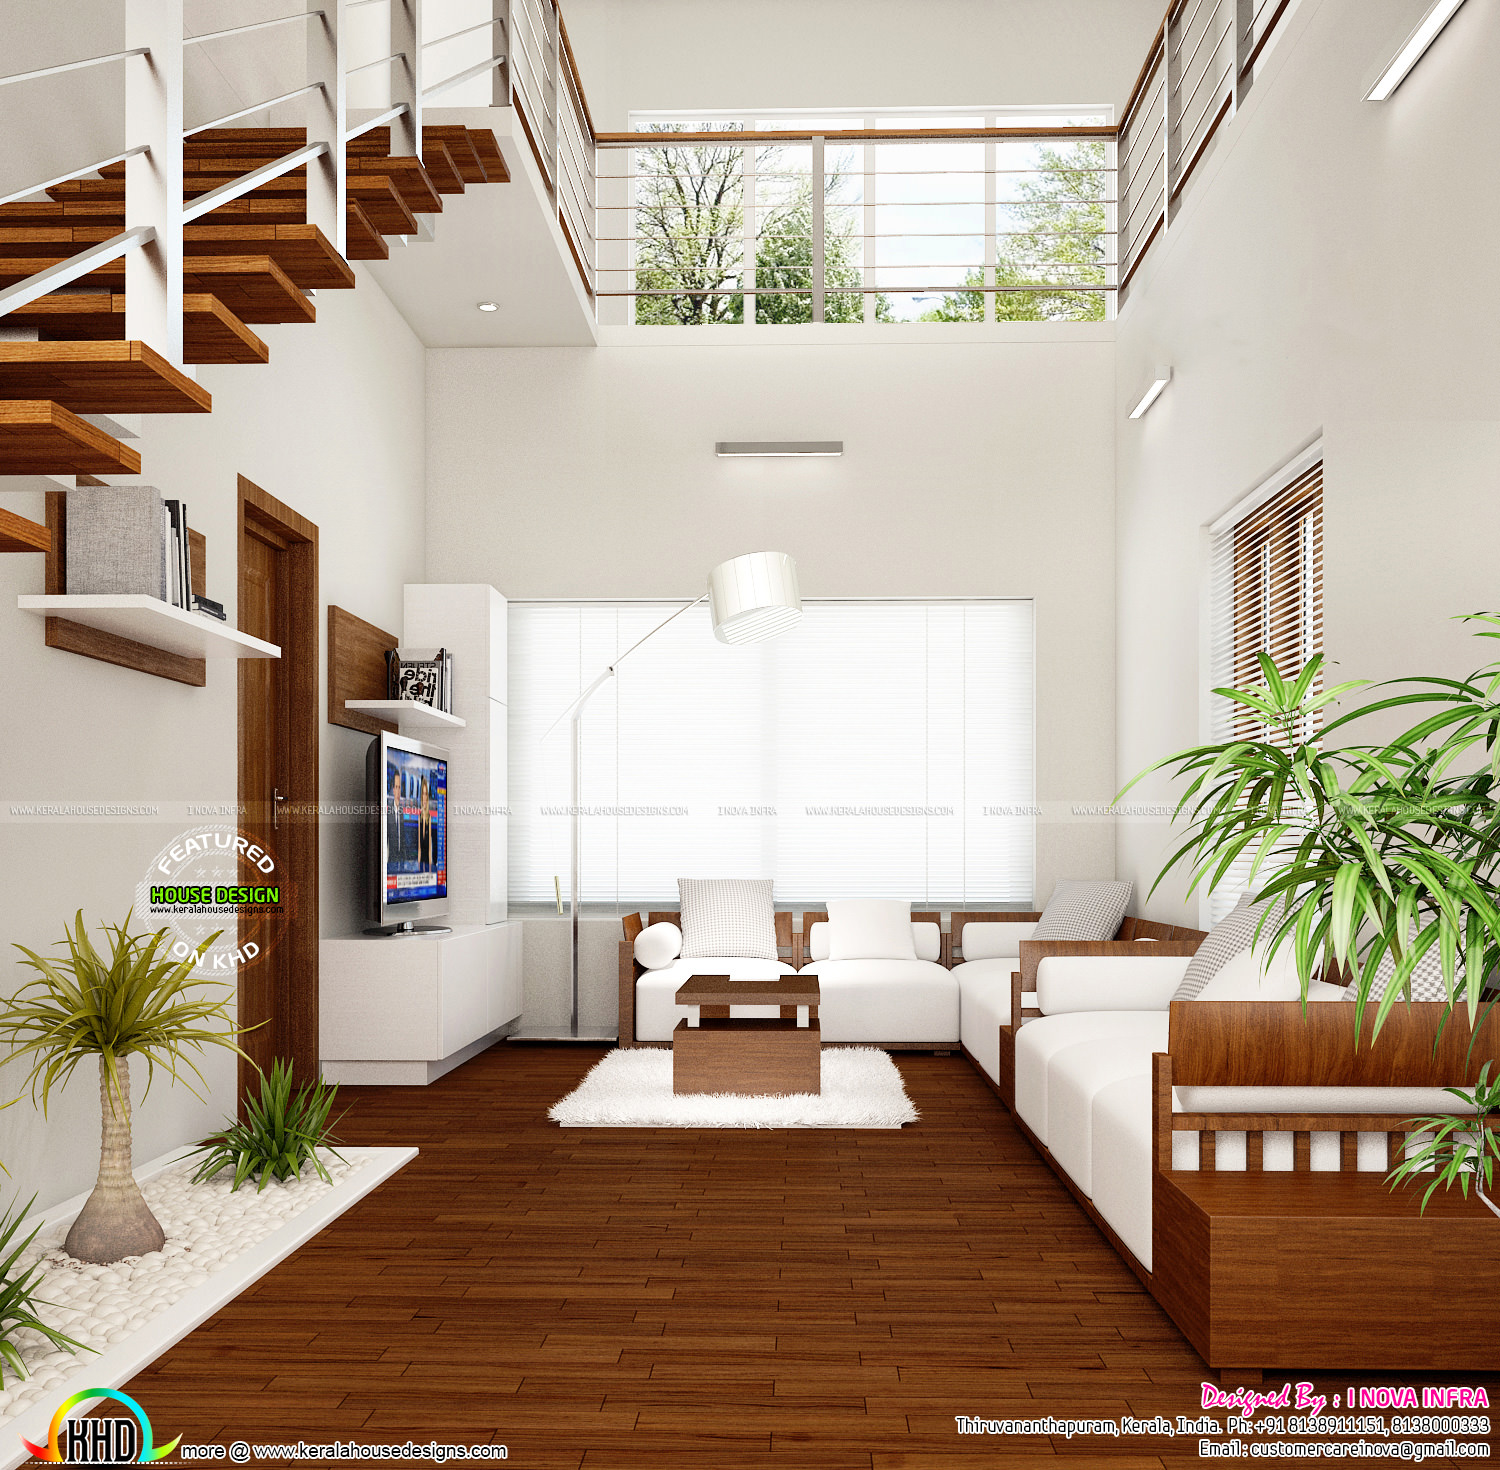 New classical interior works at trivandrum kerala home for Indoor design home